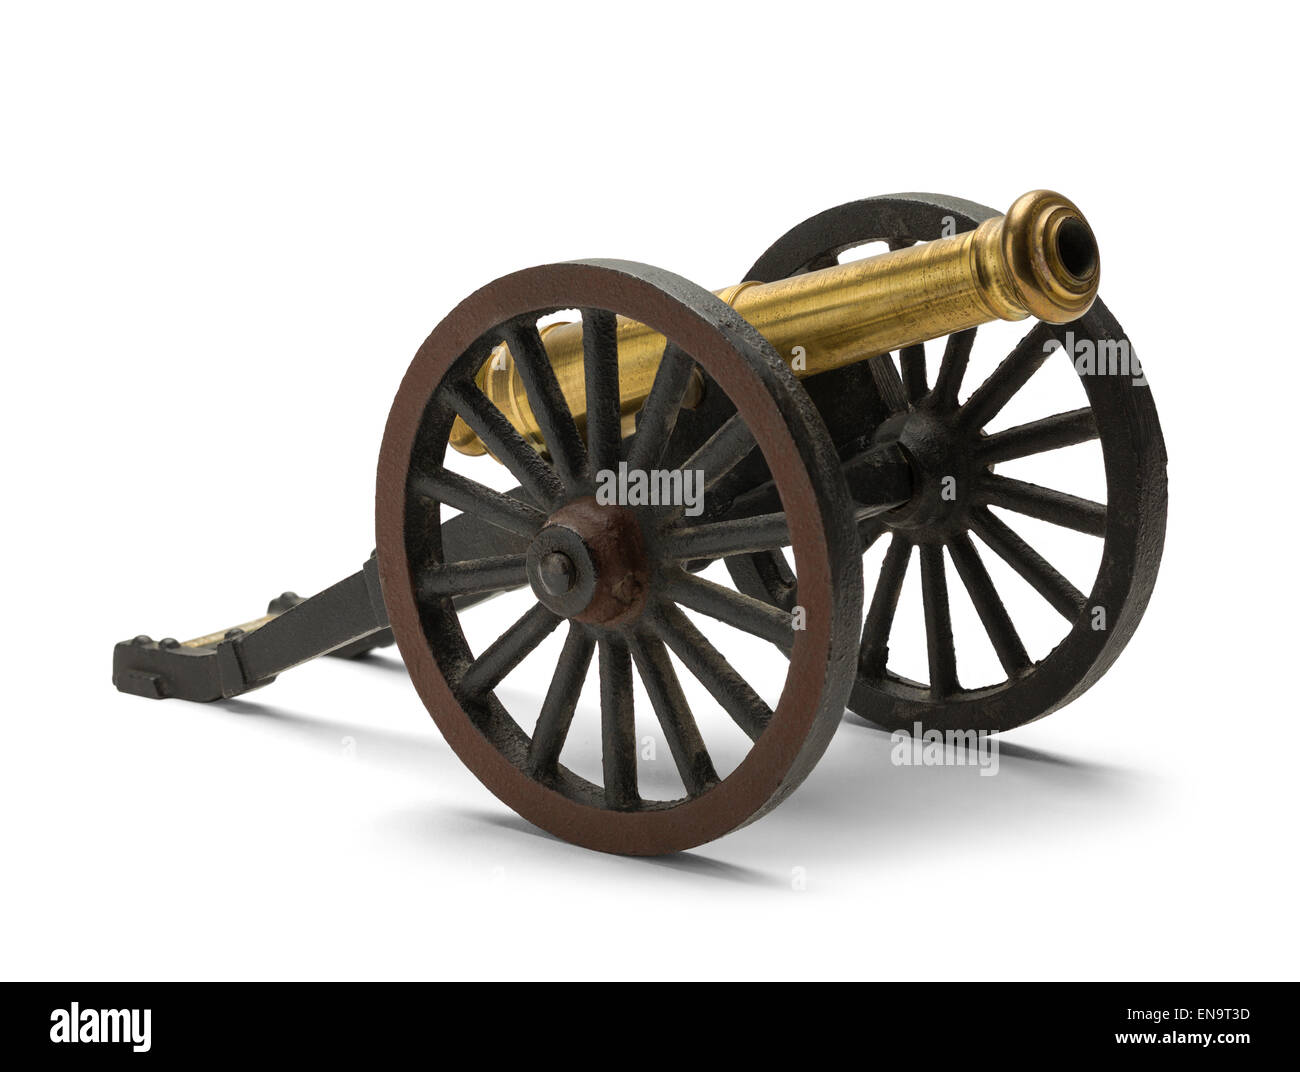 Old Civil War Cannon Isolated on White Background. - Stock Image